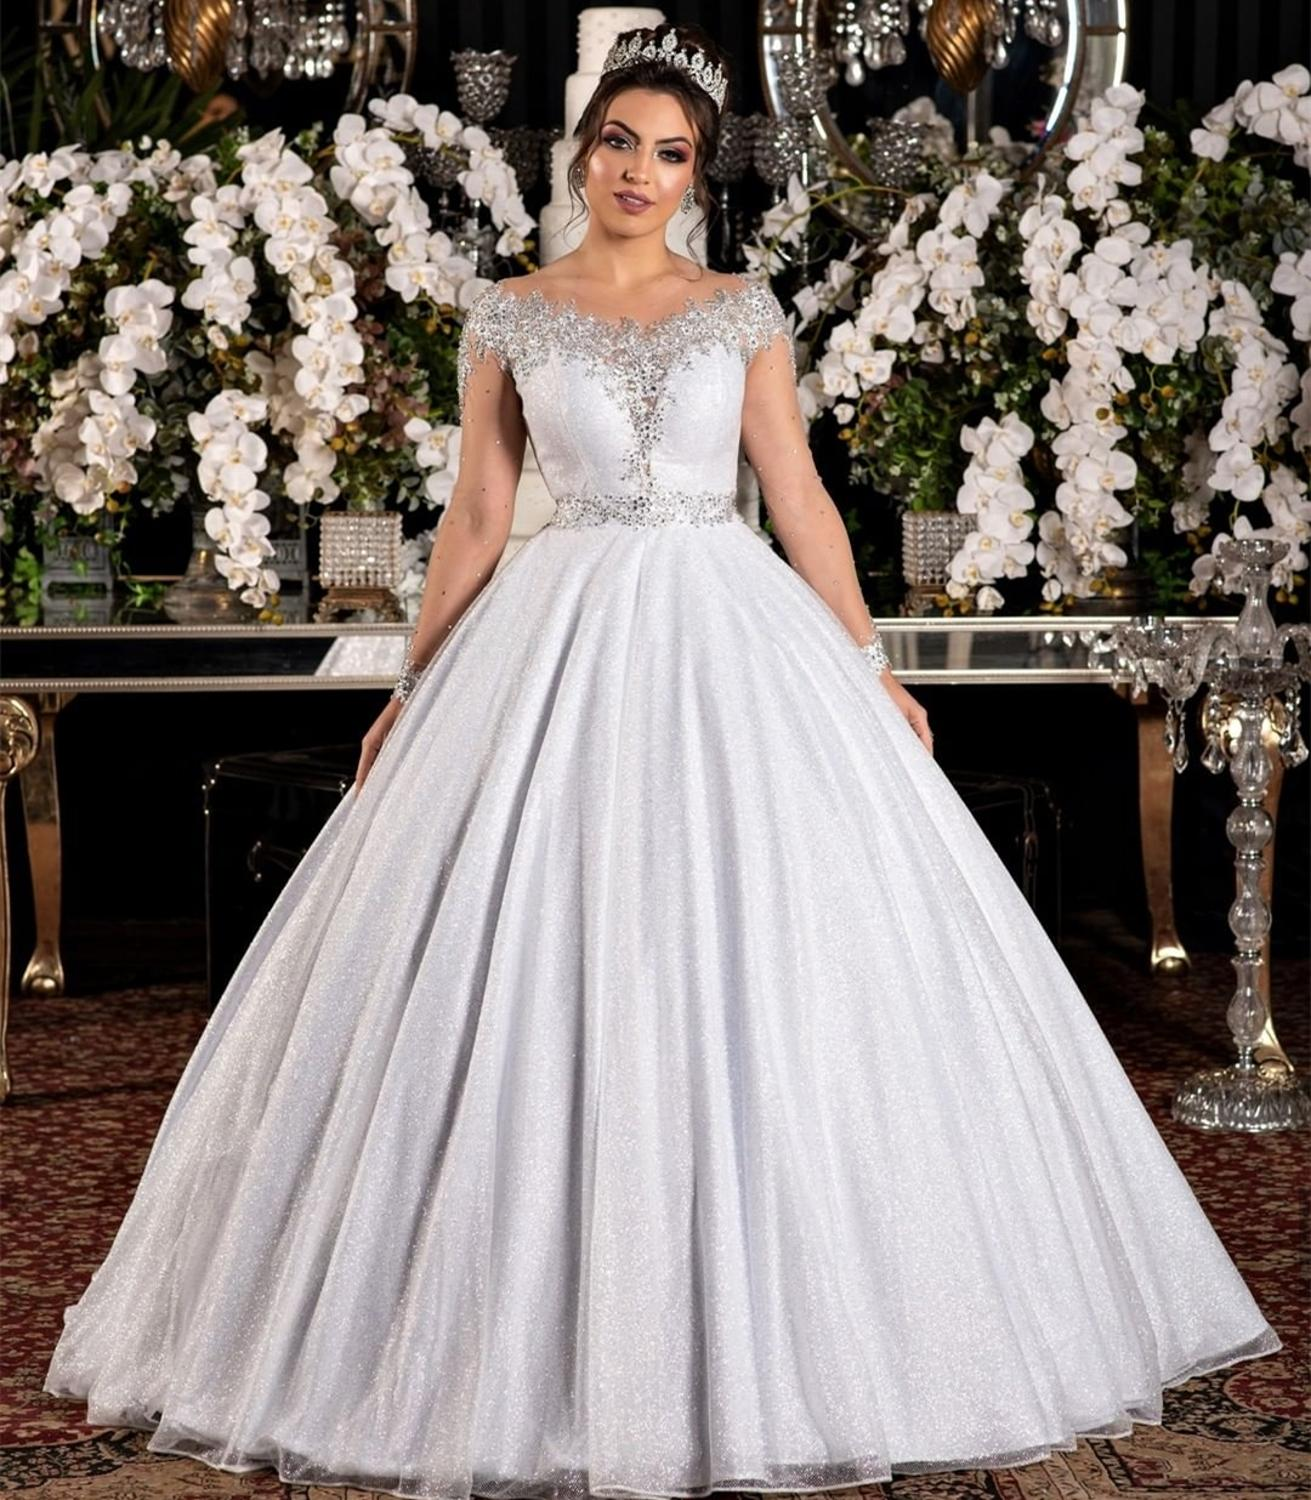 Promo Wedding Dress Ball O-Neck Lace Appliques Sequined Illusion Tulle Full Sleeve Floor Length Luxury Bridal Gown Custom Made New